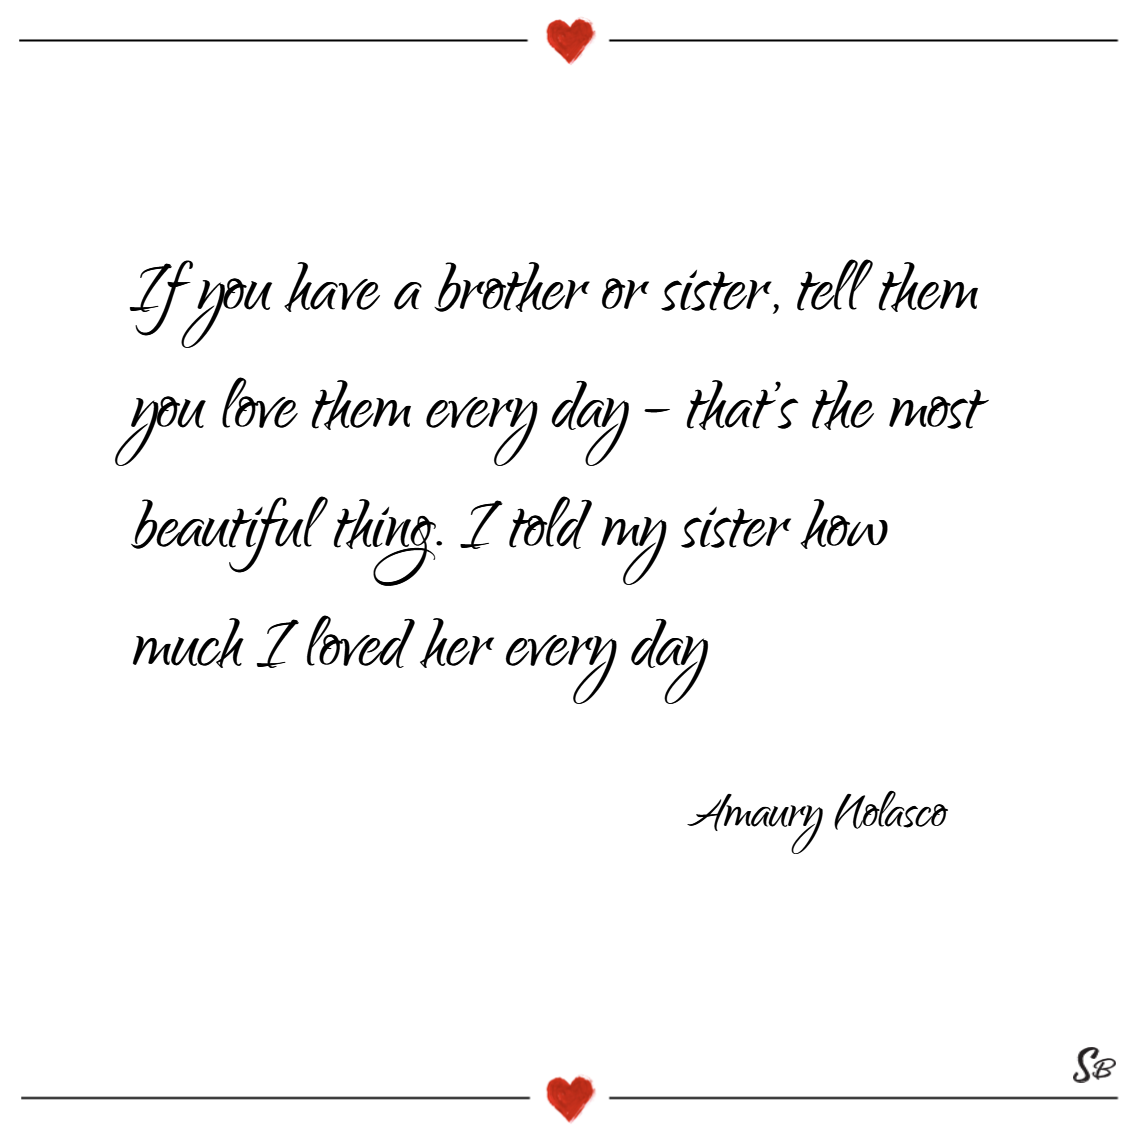 If you have a brother or sister tell them you love them every day –